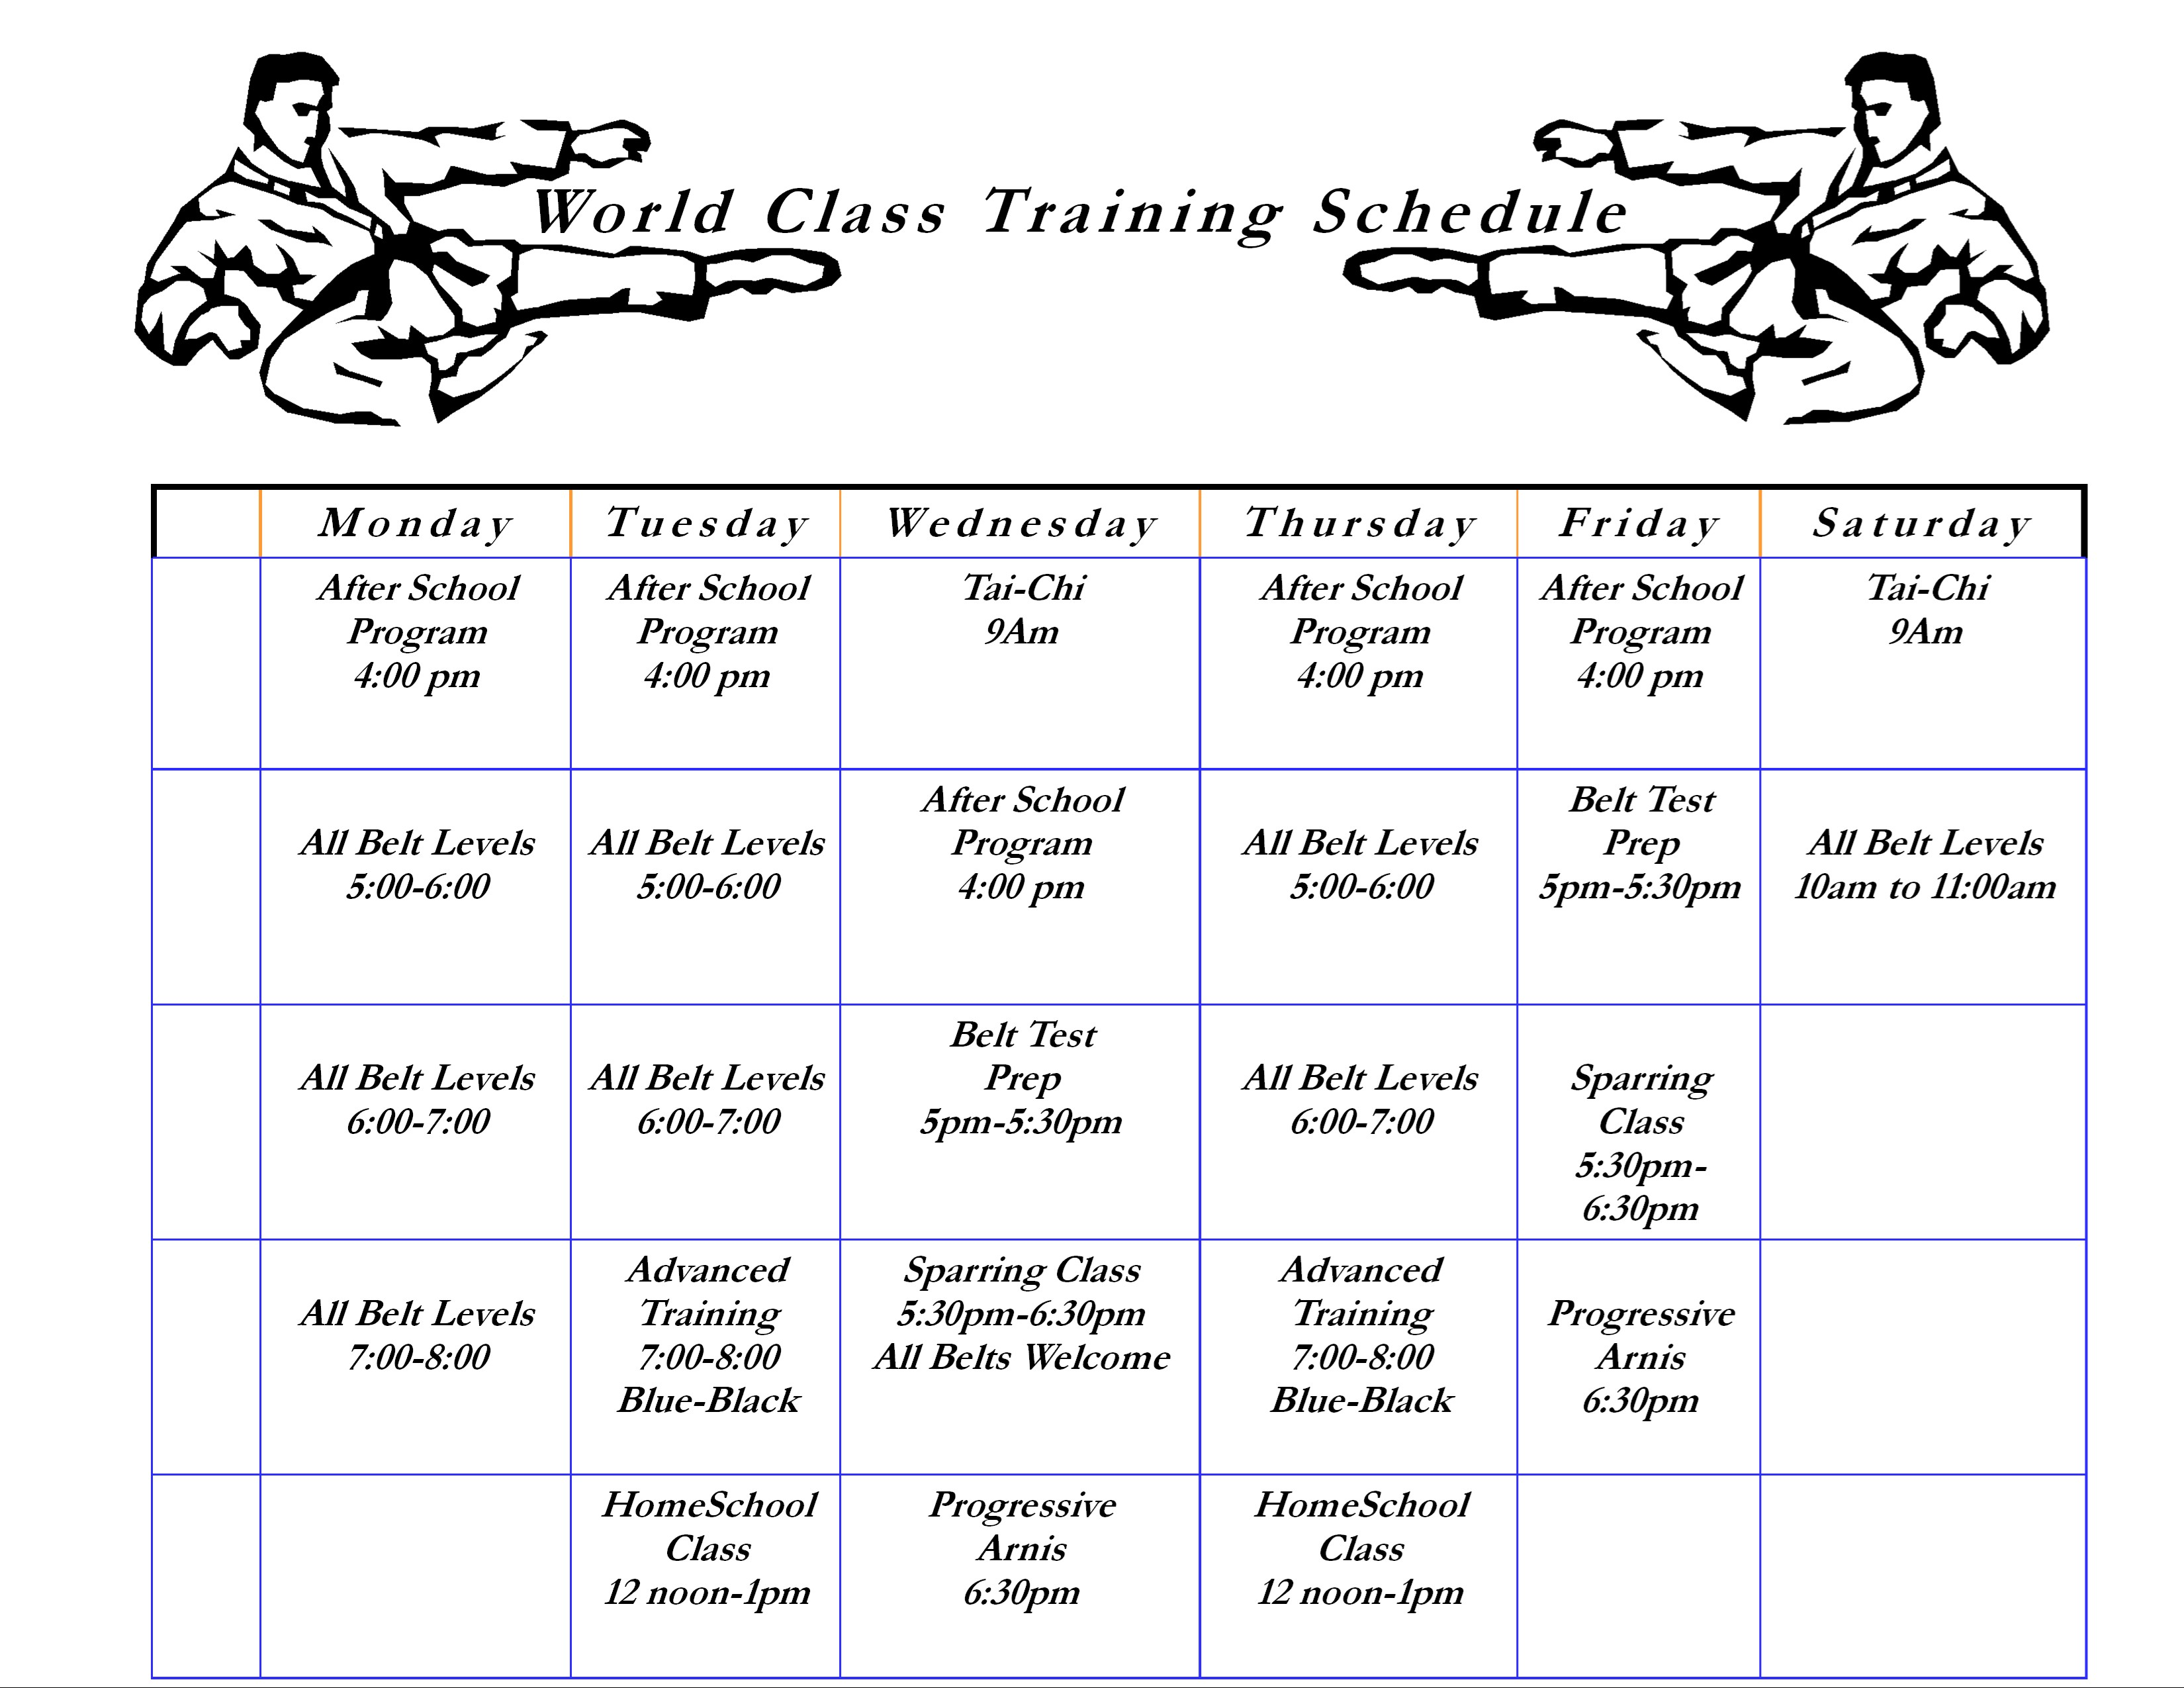 New Training Schedule